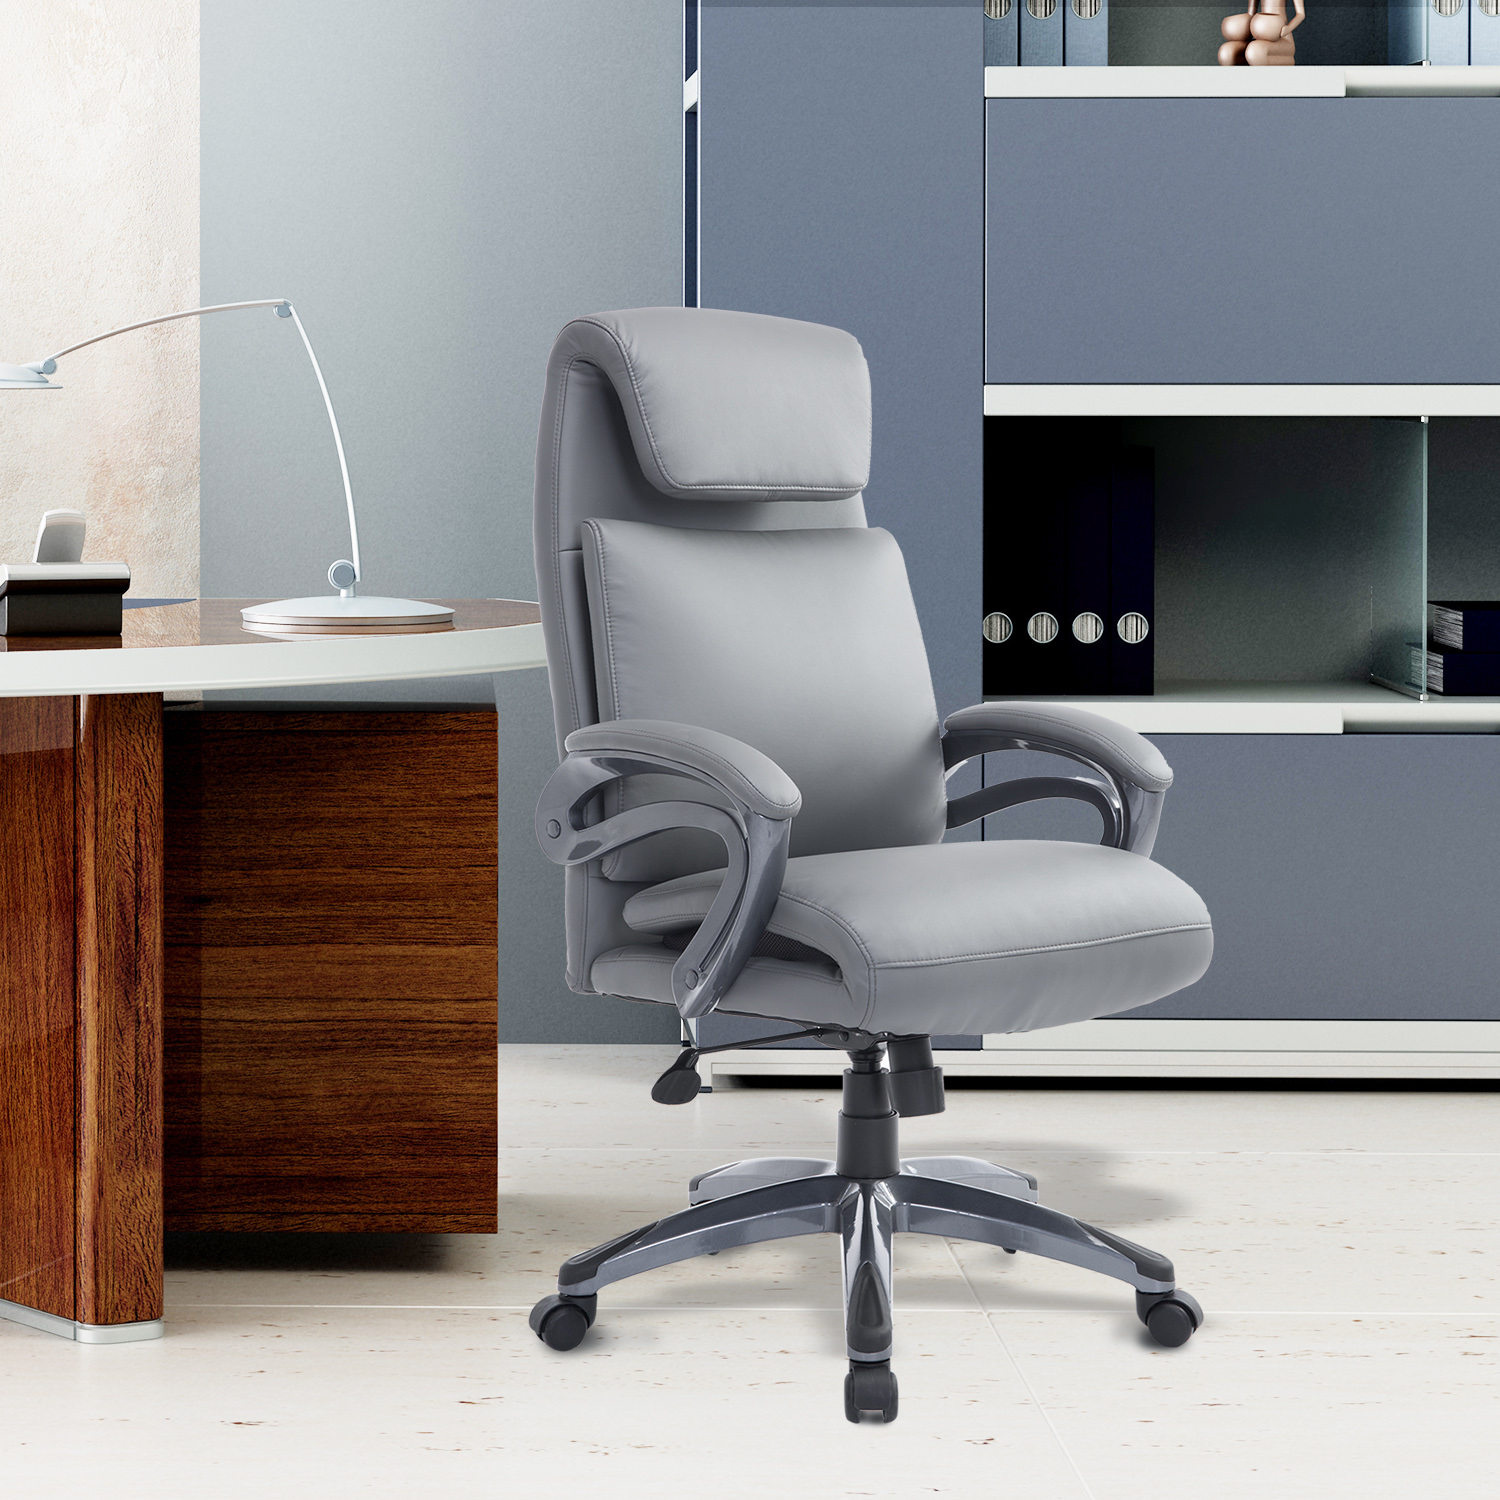 Image of CAD $139.99 HOMCOM High Back Ergonomic Executive Office Chair Computer Seat with Rolled Headrest Leather Grey / Adjustable Swivel Thick Padded Home PU Canada 25093586019